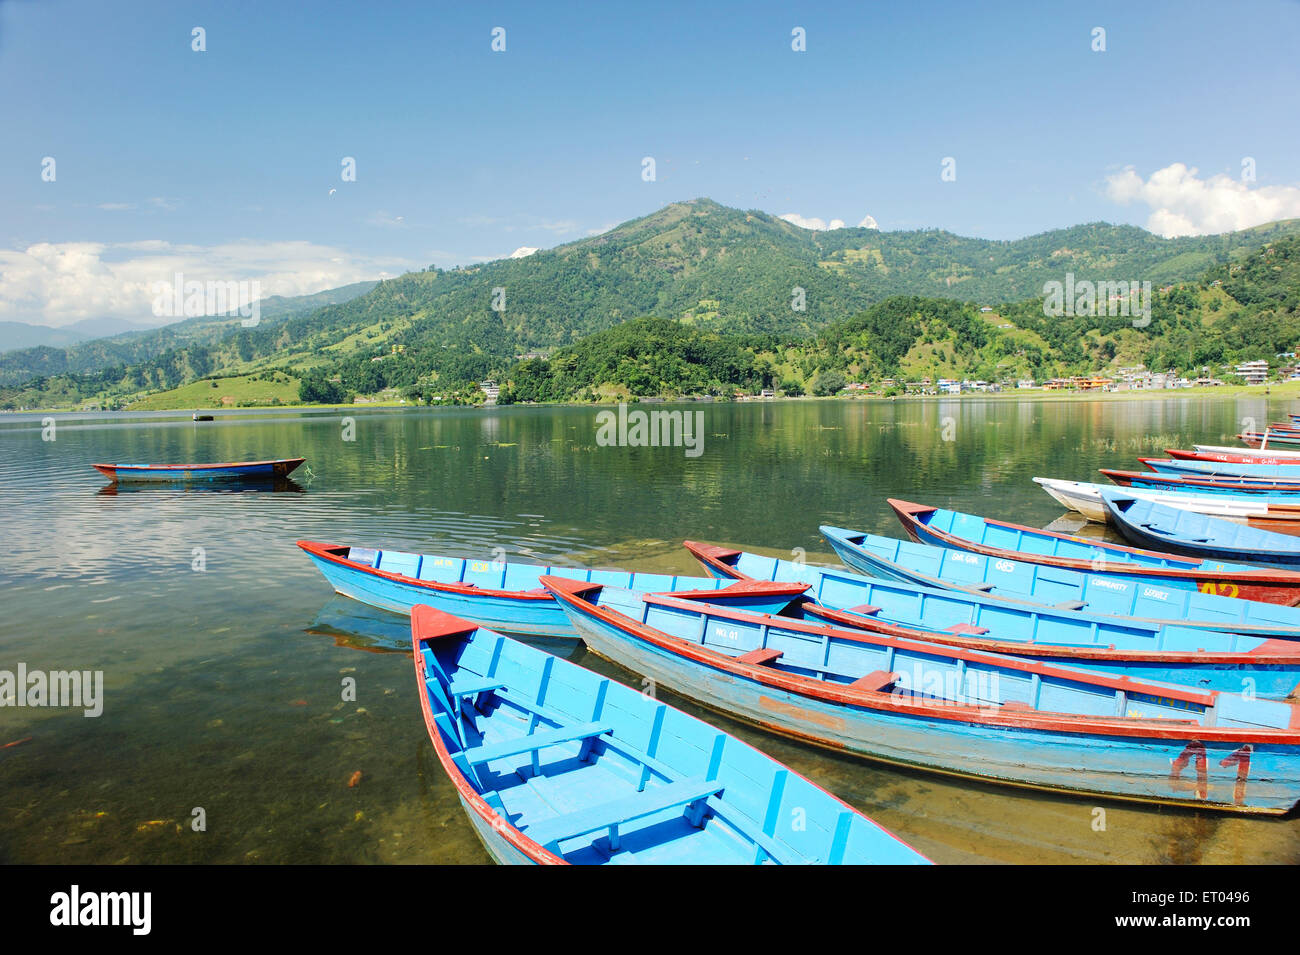 Boats at lake phewa ; Pokhara ; Nepal - Stock Image